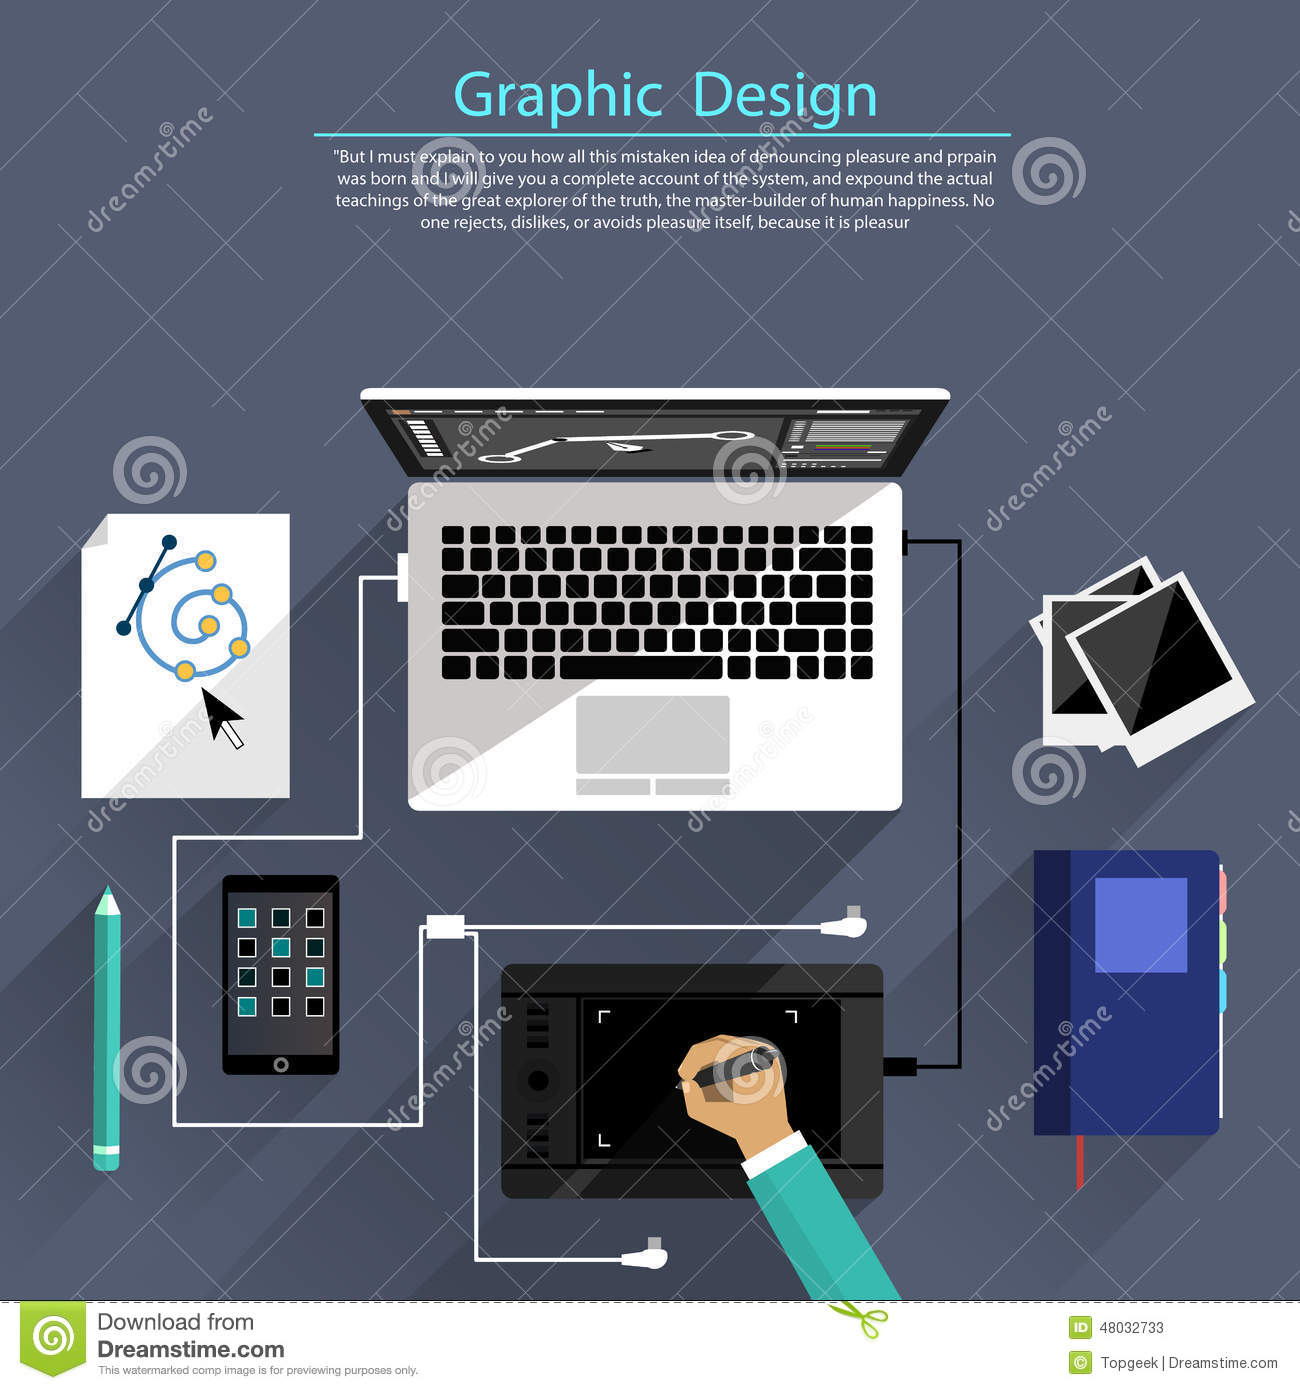 what is the best desktop computer for graphic design